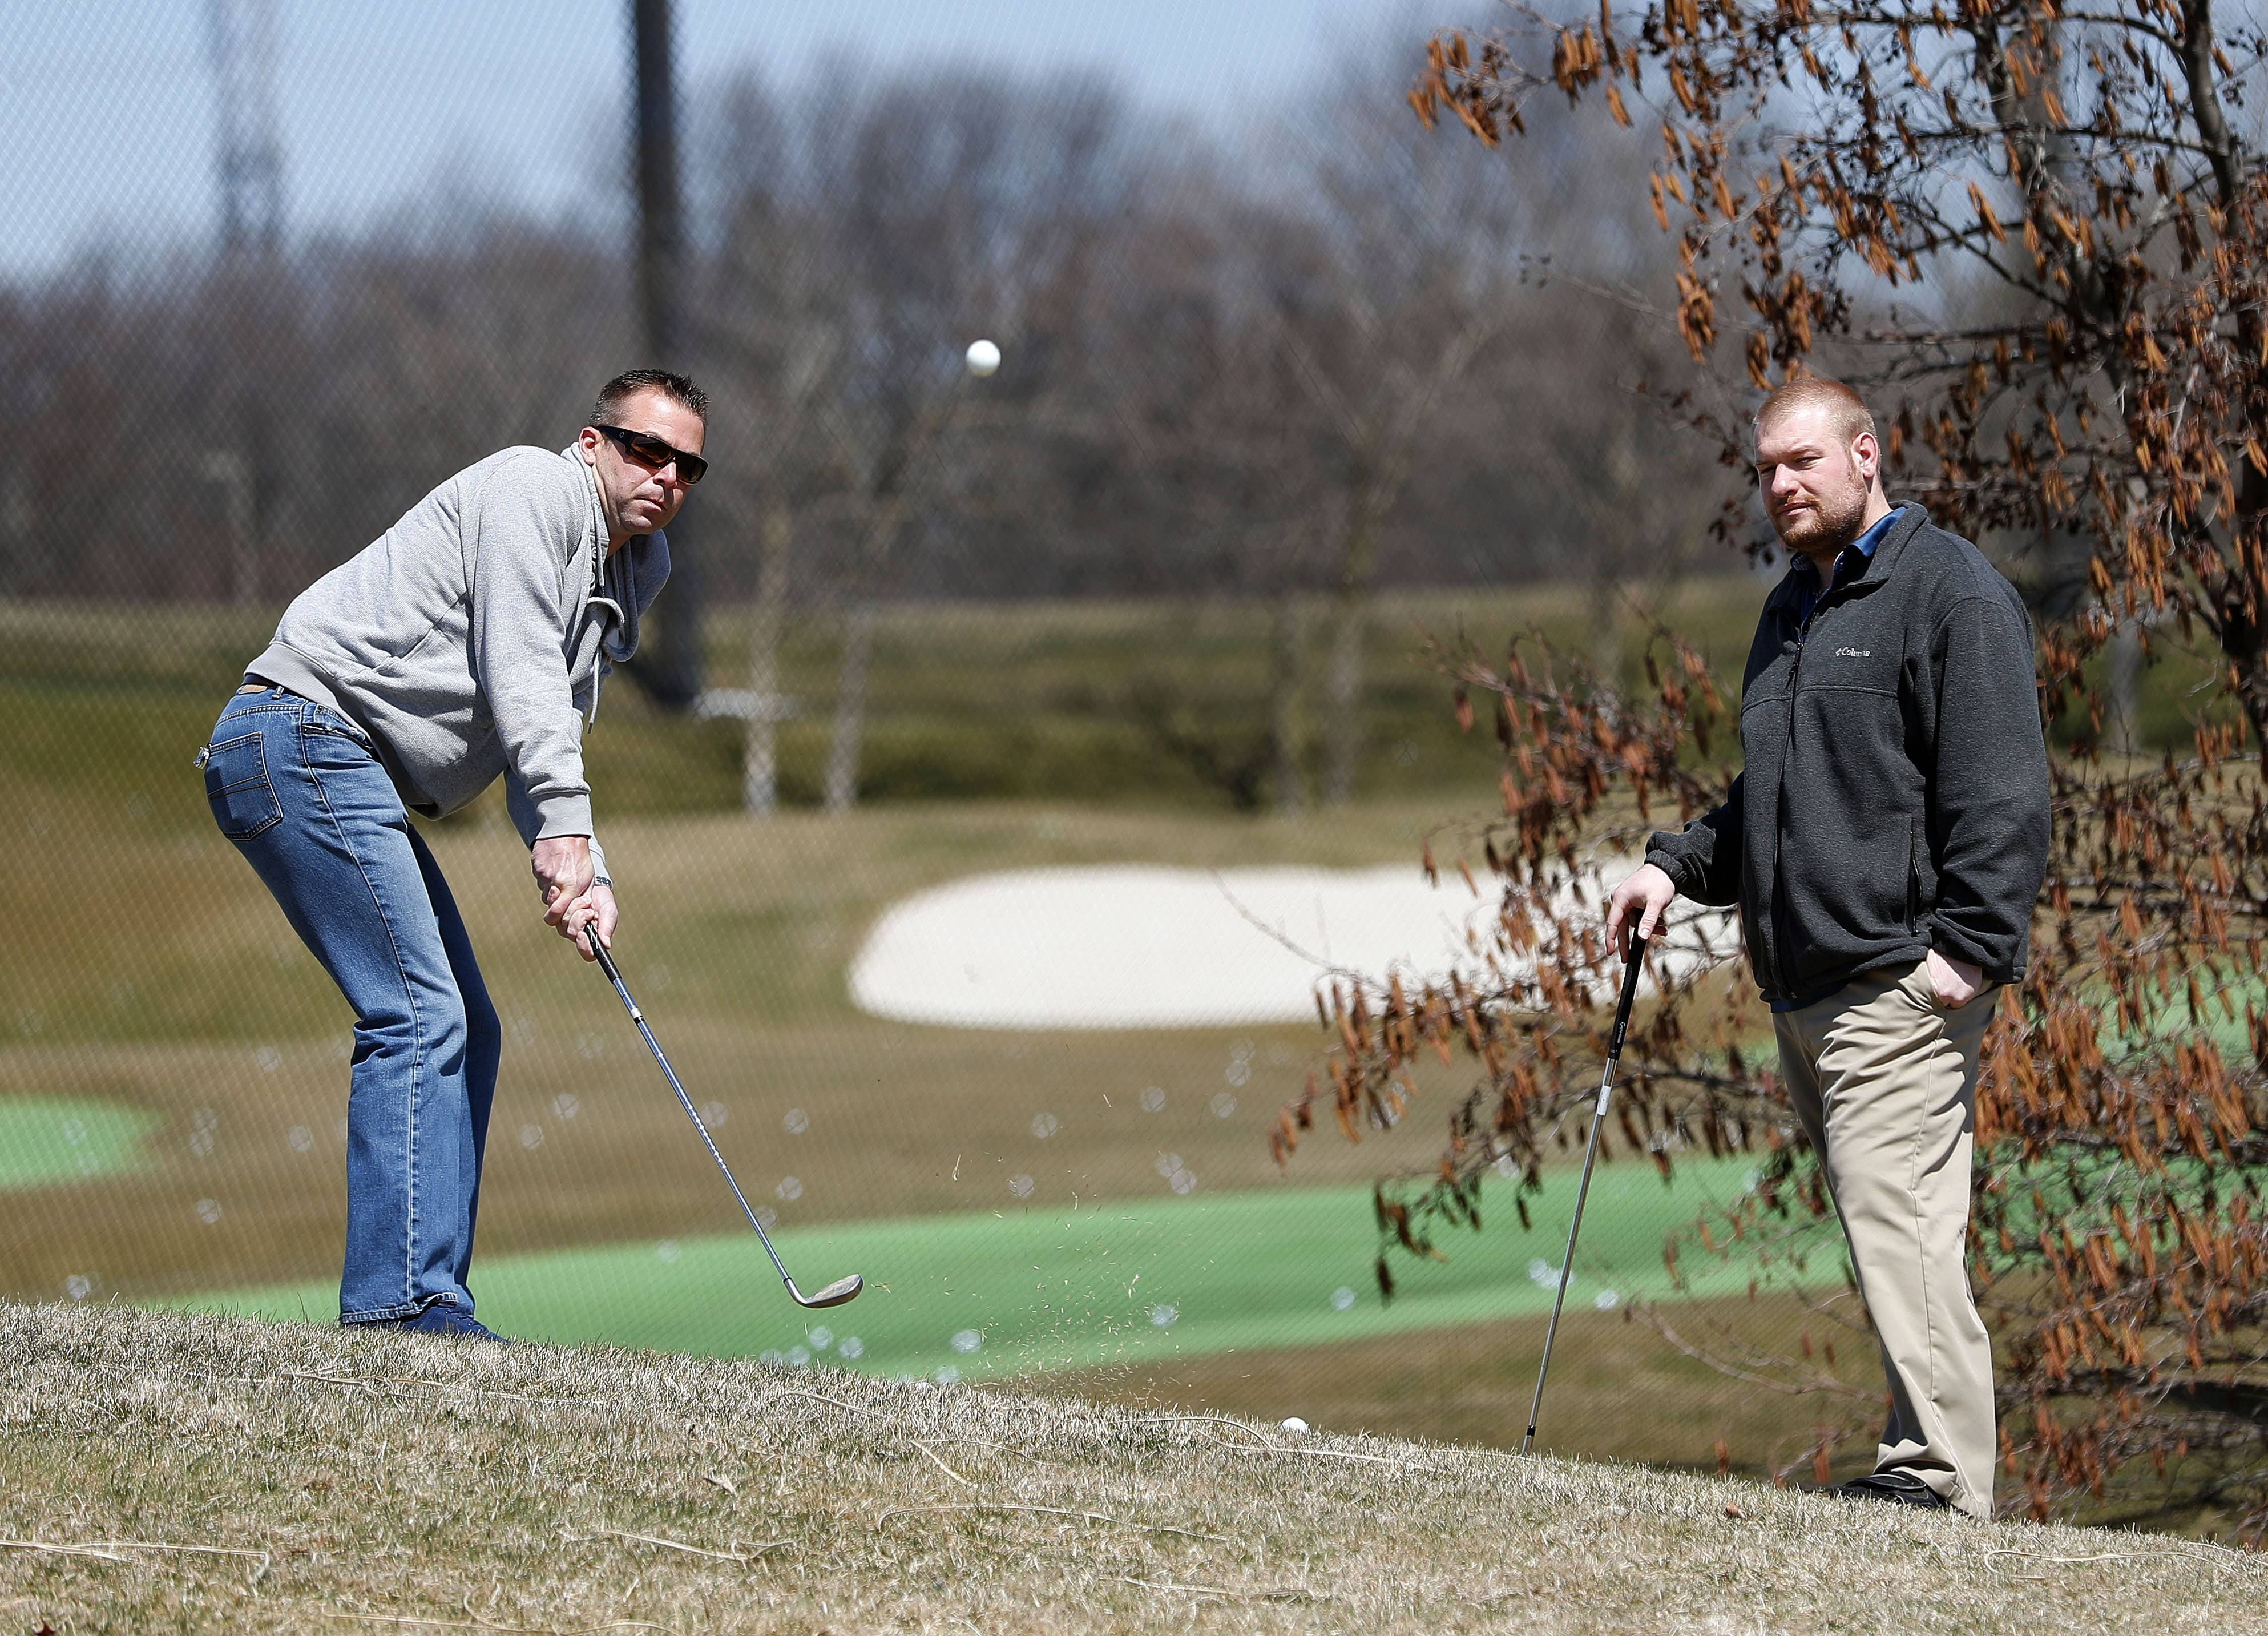 Jon Merrick of Chicago, left, and Cory Gaul of Wauconda take advantage of temperatures in the 50s to practice their chipping Thursday at Libertyville Sports Complex.